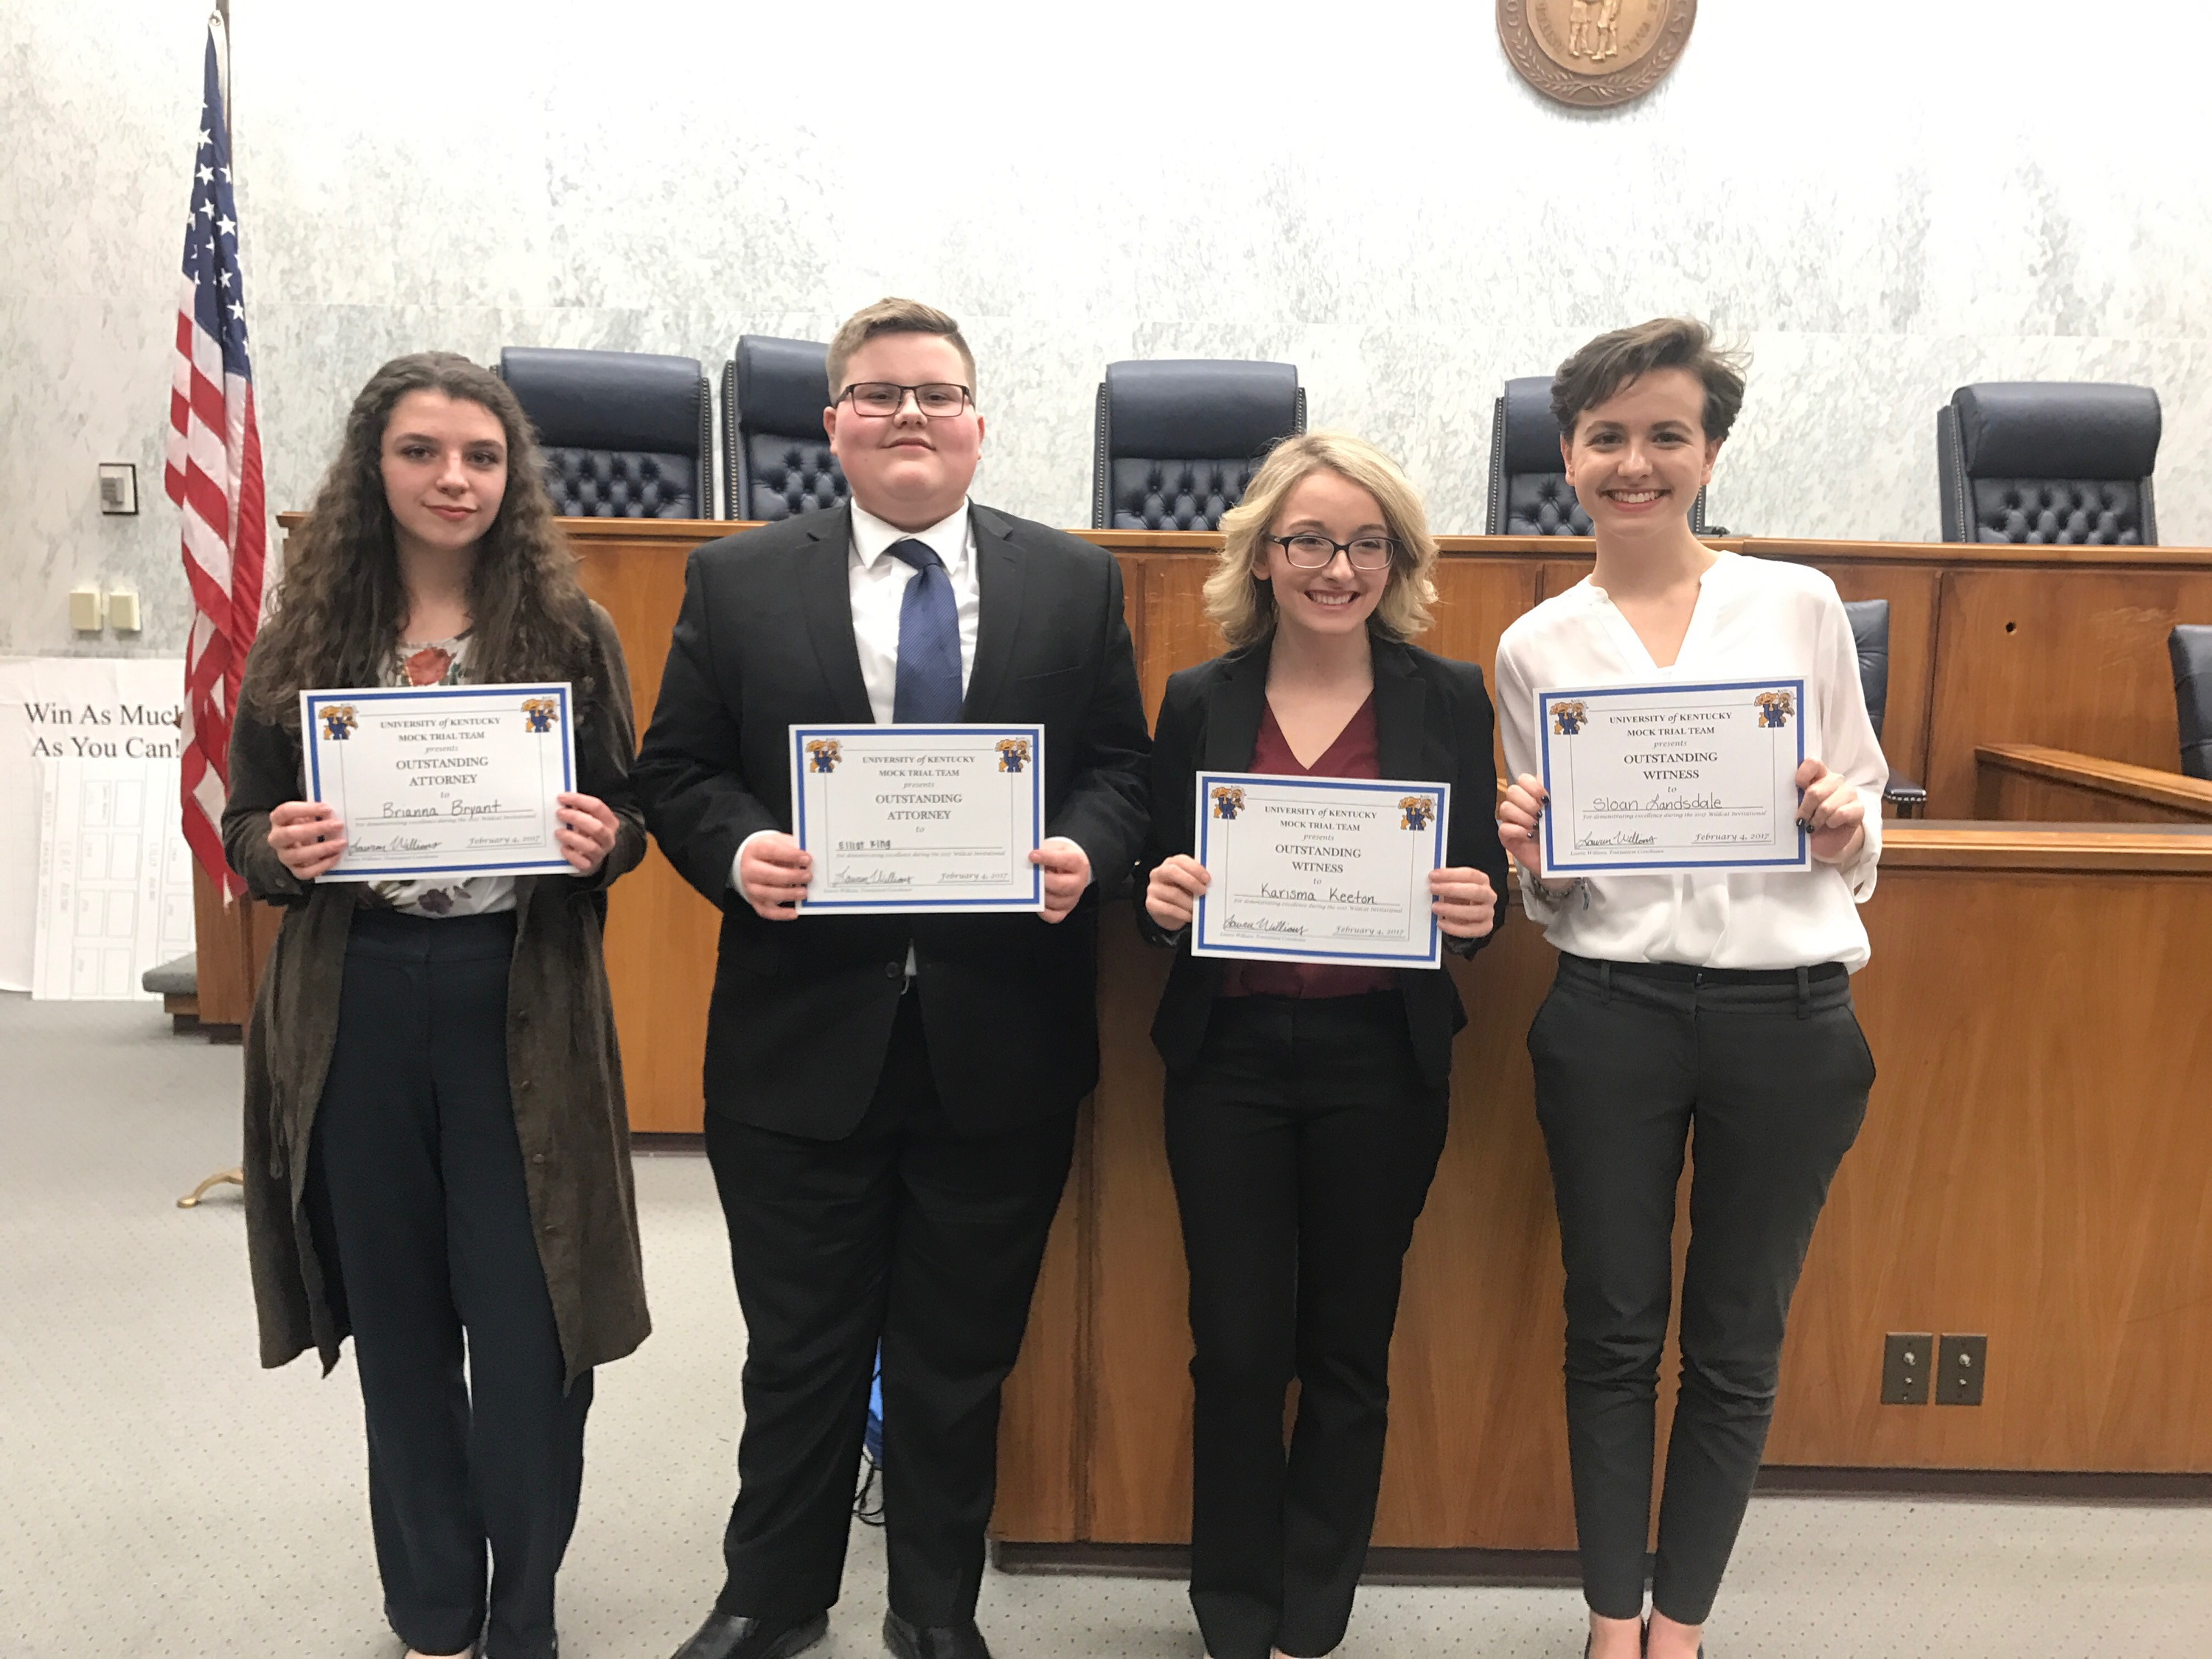 (From Left to Right) Brianna Bryant (Outstanding Plaintiff witness), Elliot King (Outstanding Defense Attorney), Karisma Keeton (Outstanding Plaintiff Attorney) and Sloan Landsdale (Outstanding Defense Witness).